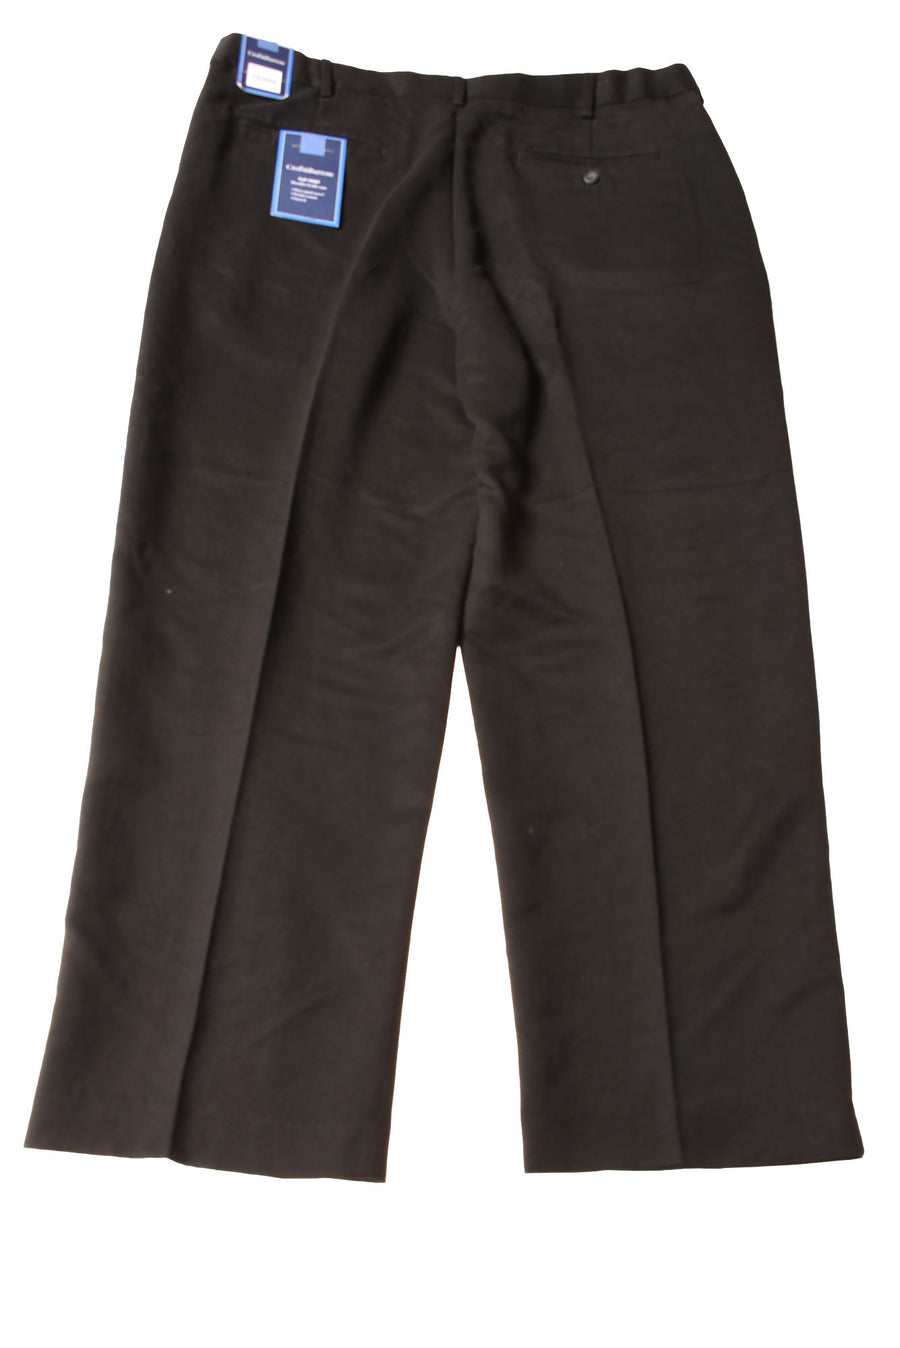 Men's Slacks By Croft & Barrow